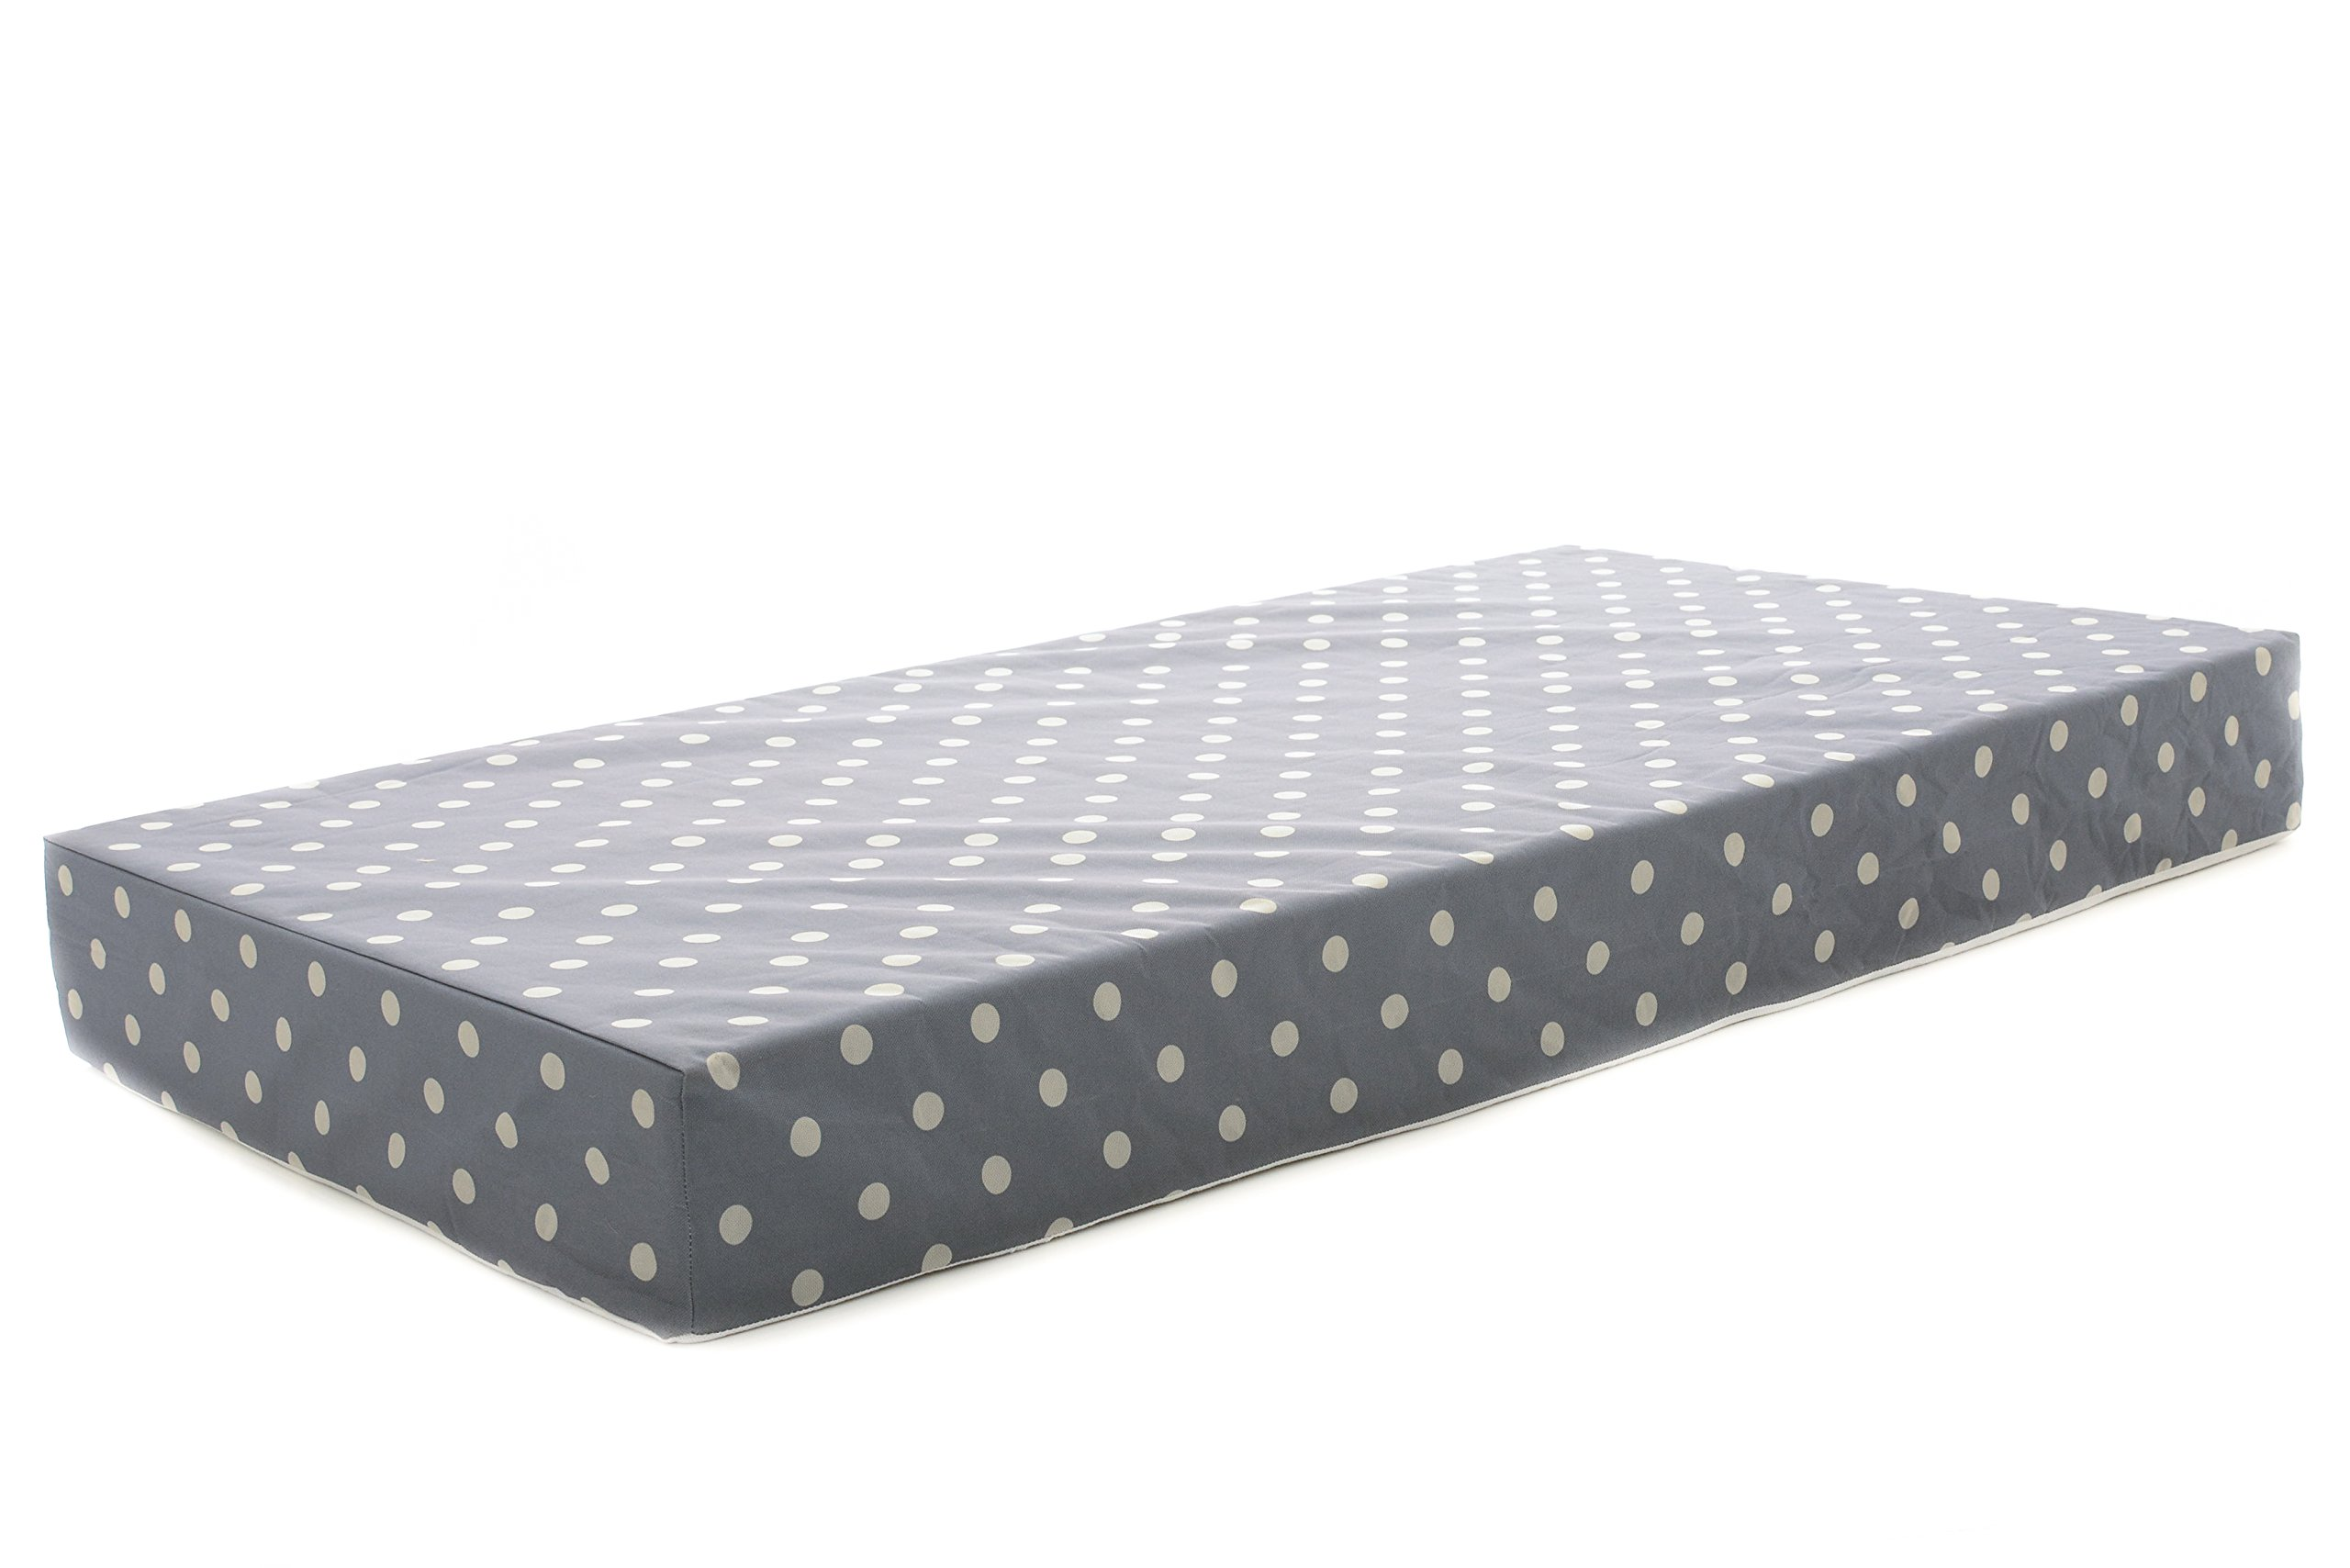 "Milliard Crib Mattress and Toddler Bed Mattress | Hypoallergenic + Waterproof Encasement | 27.5""x52""x5.5"""